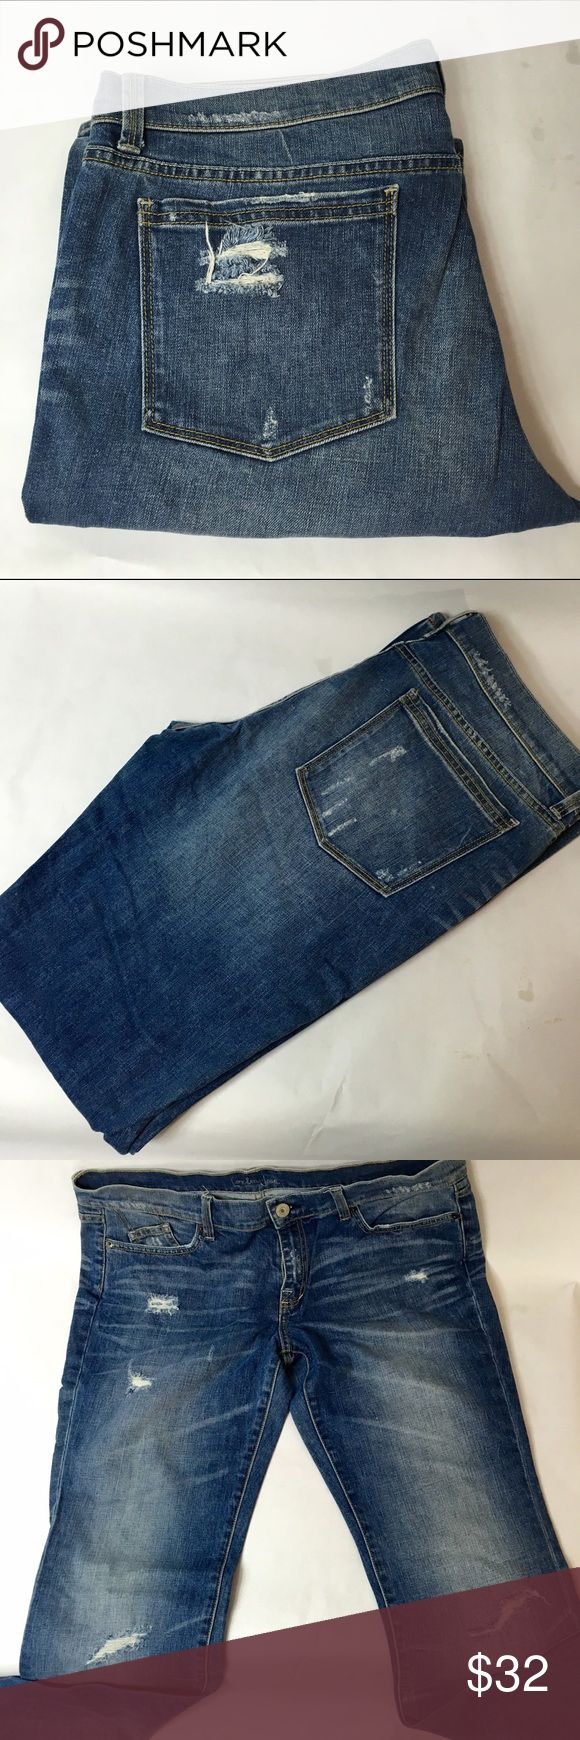 "VS London Jeans London Jeans  From Victorias Secret Online  Size 14  EUC  Cotton/Spandex  Length listed as ""regular""  Fits like a 32/33 length  Factory destruct on front legs, pockets and hem lines london jeans  Jeans Boot Cut"